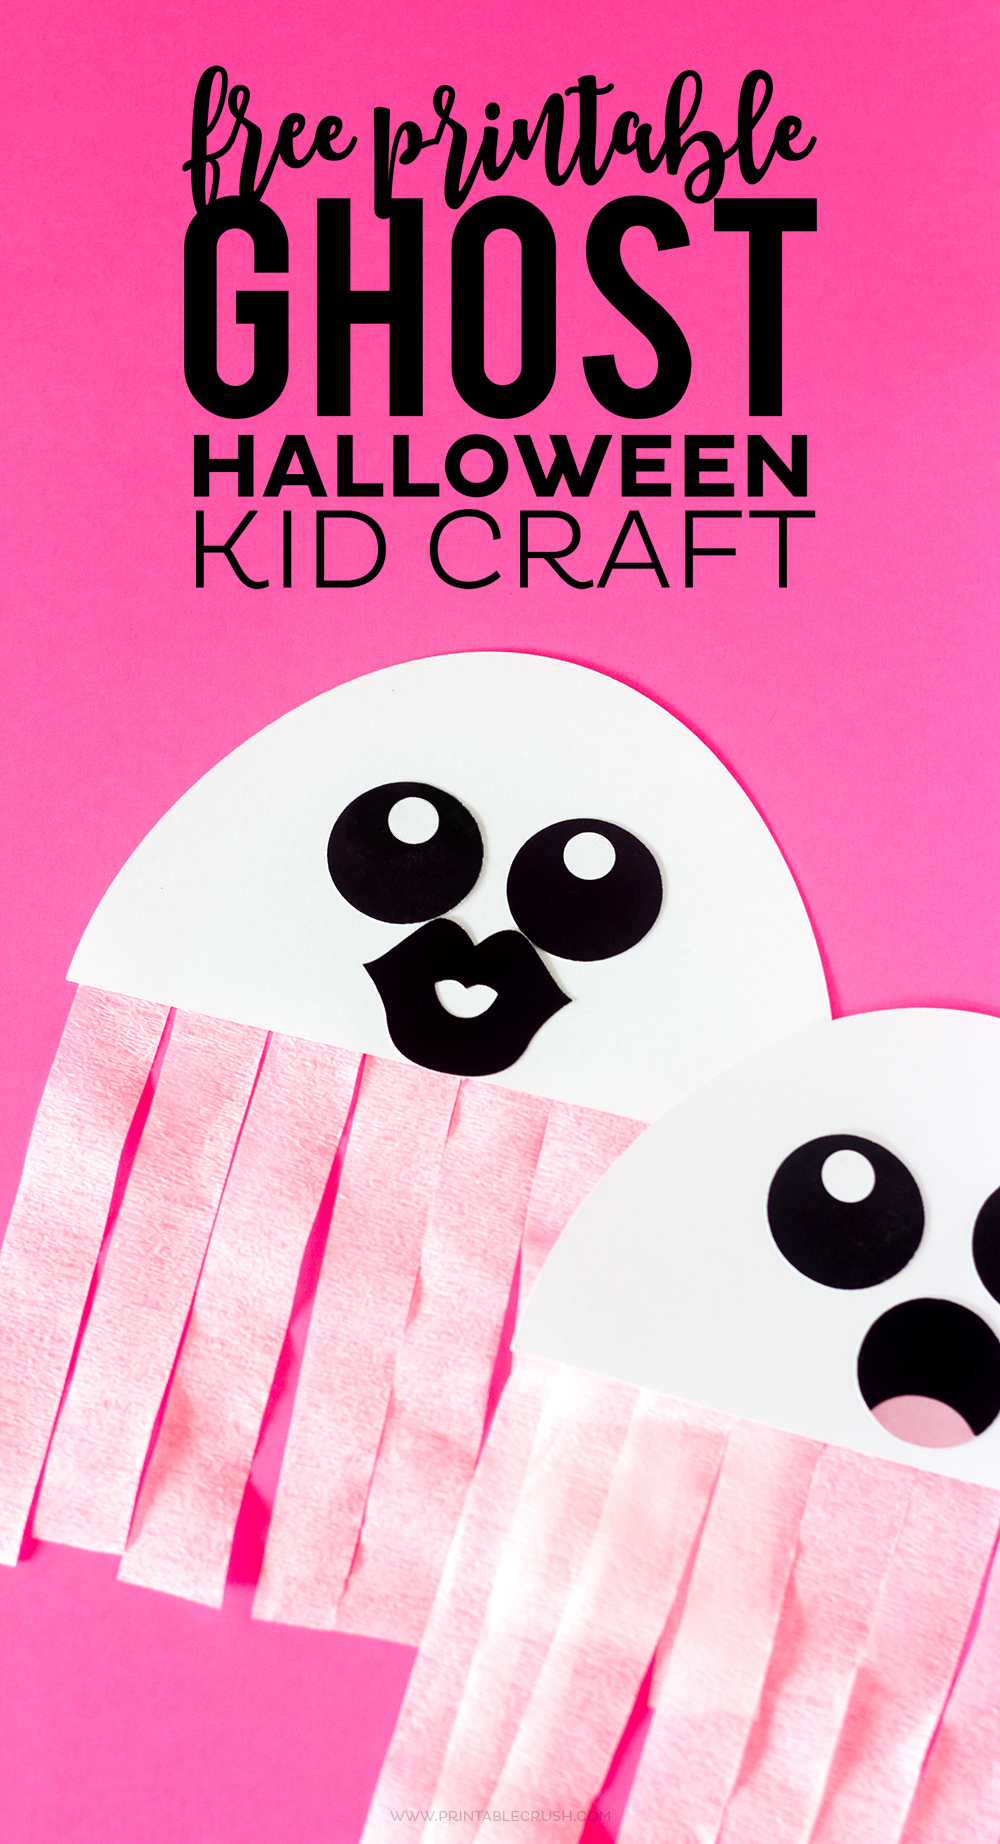 Printable Halloween Classroom Decorations ~ Free printable ghost halloween craft crush